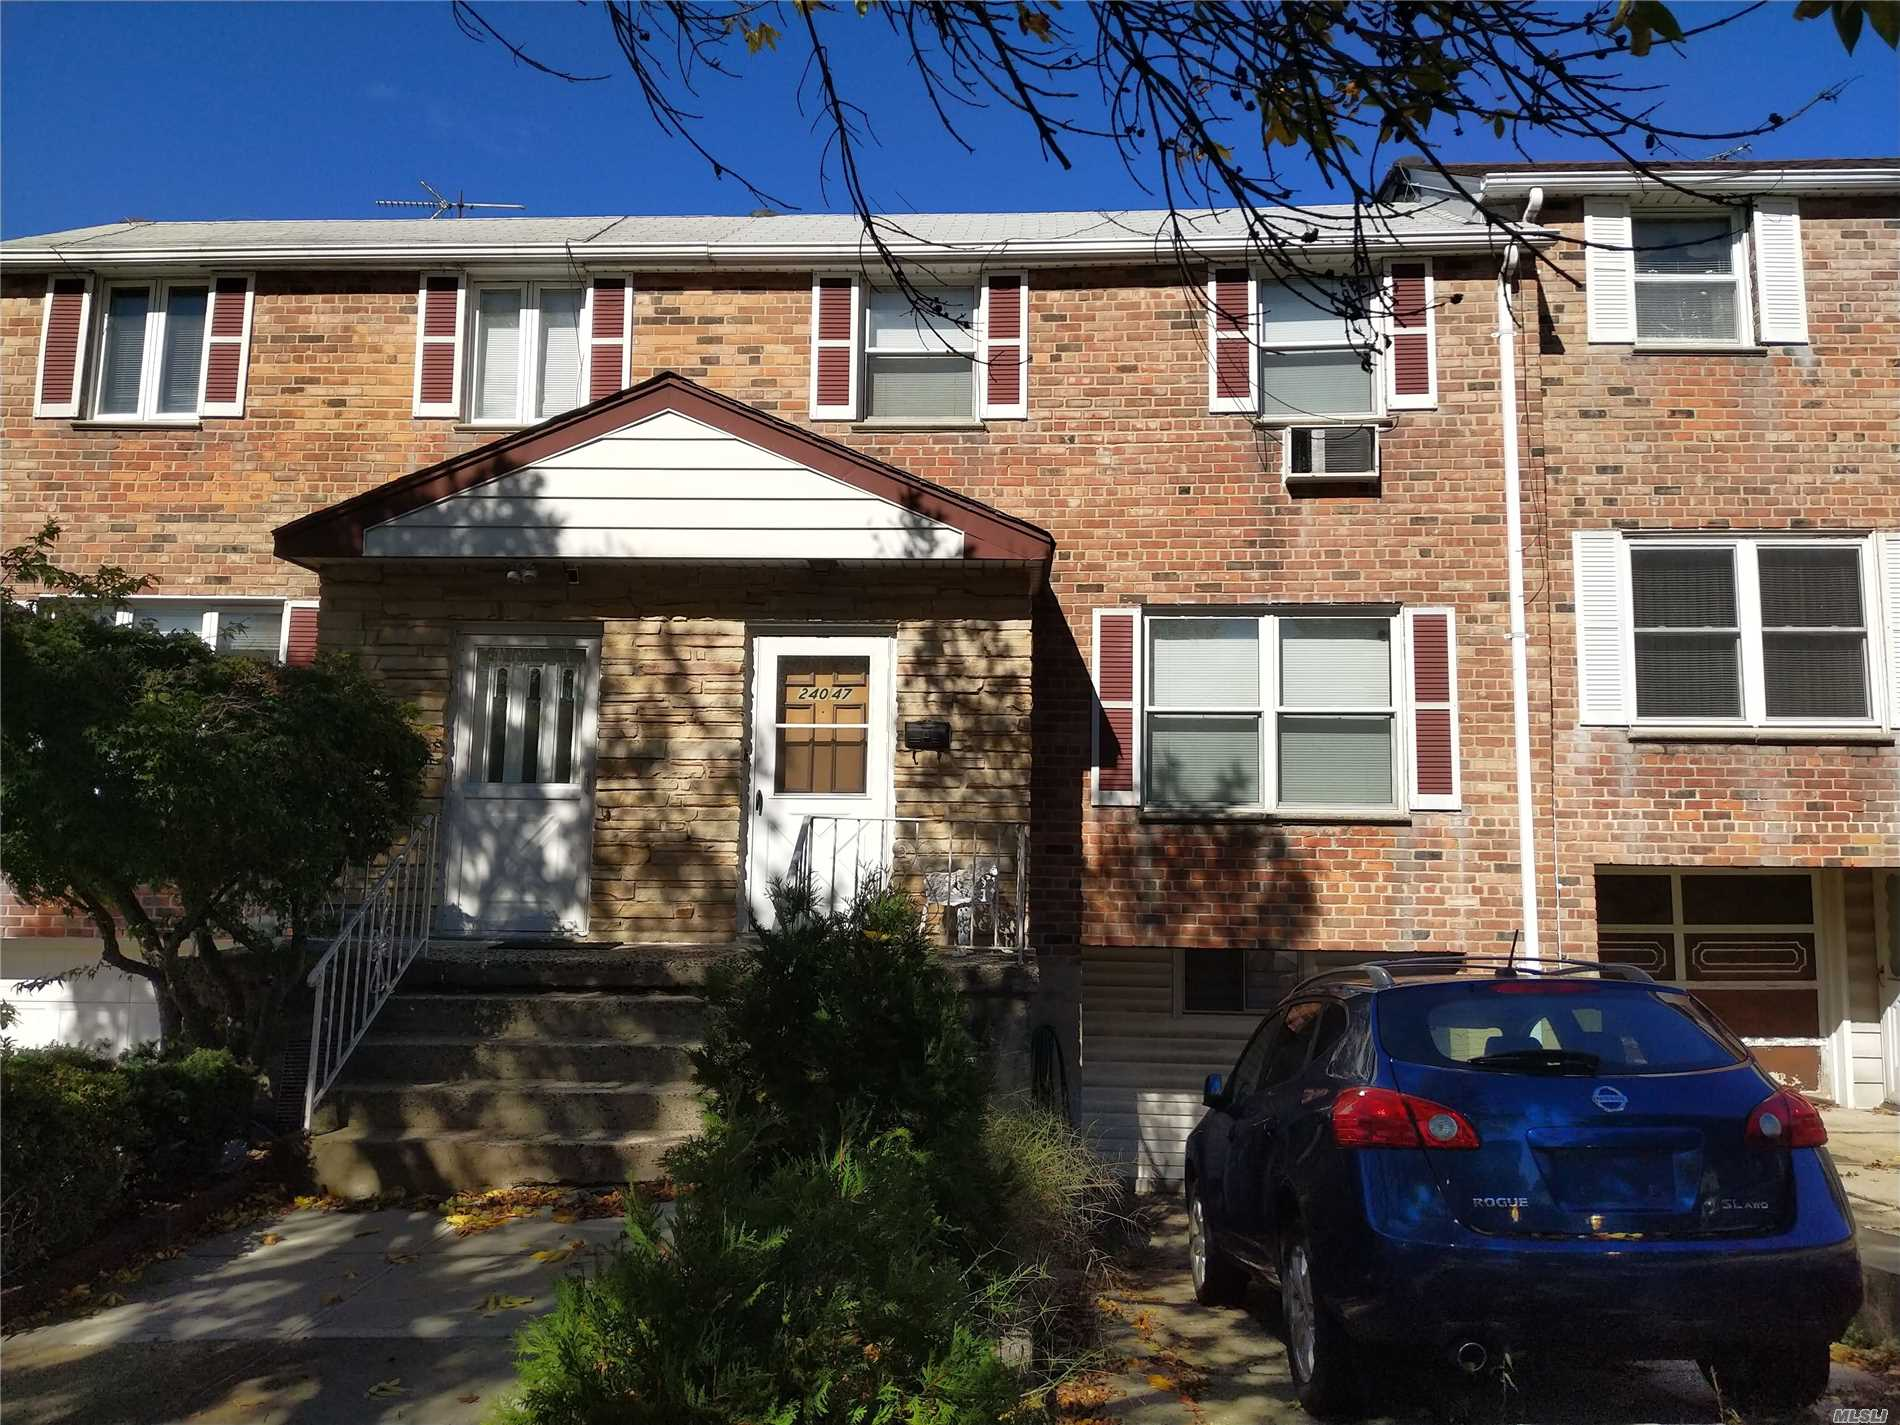 Property for sale at 240-47 67th Avenue, Douglaston NY 11362, Douglaston,  New York 11362